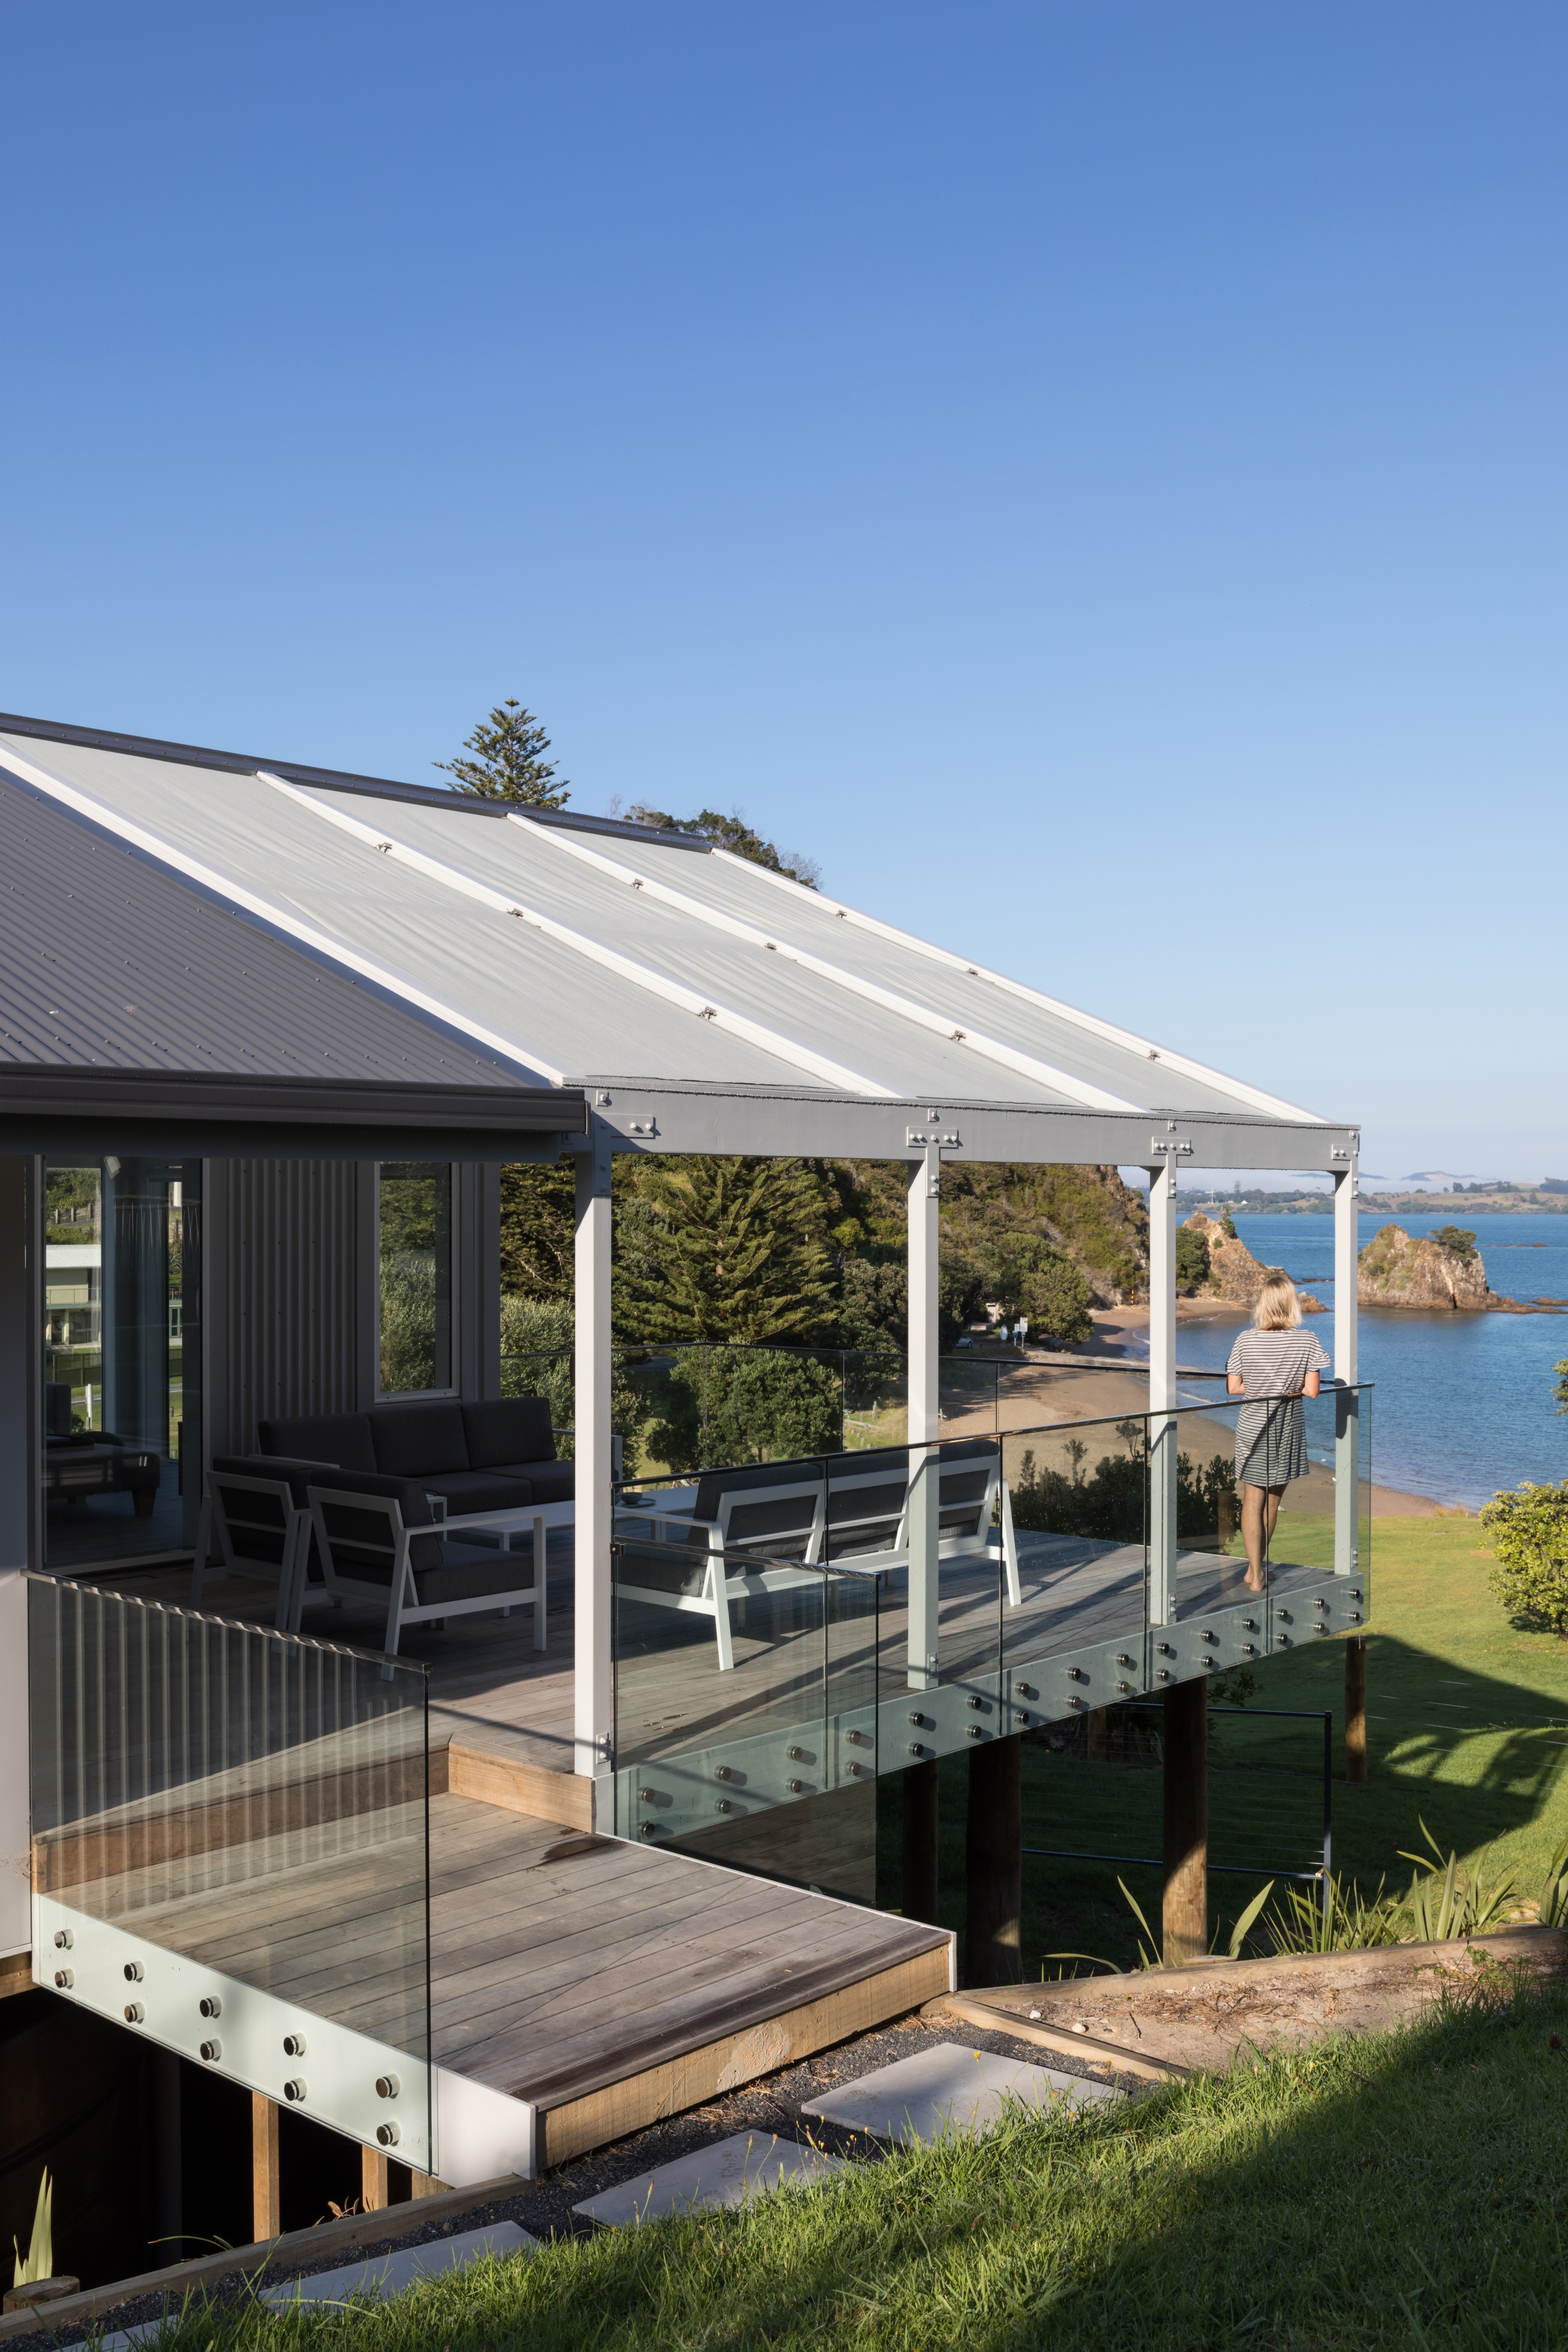 Outdoor deck facing the ocean at Tapeka Point, Bay of Islands